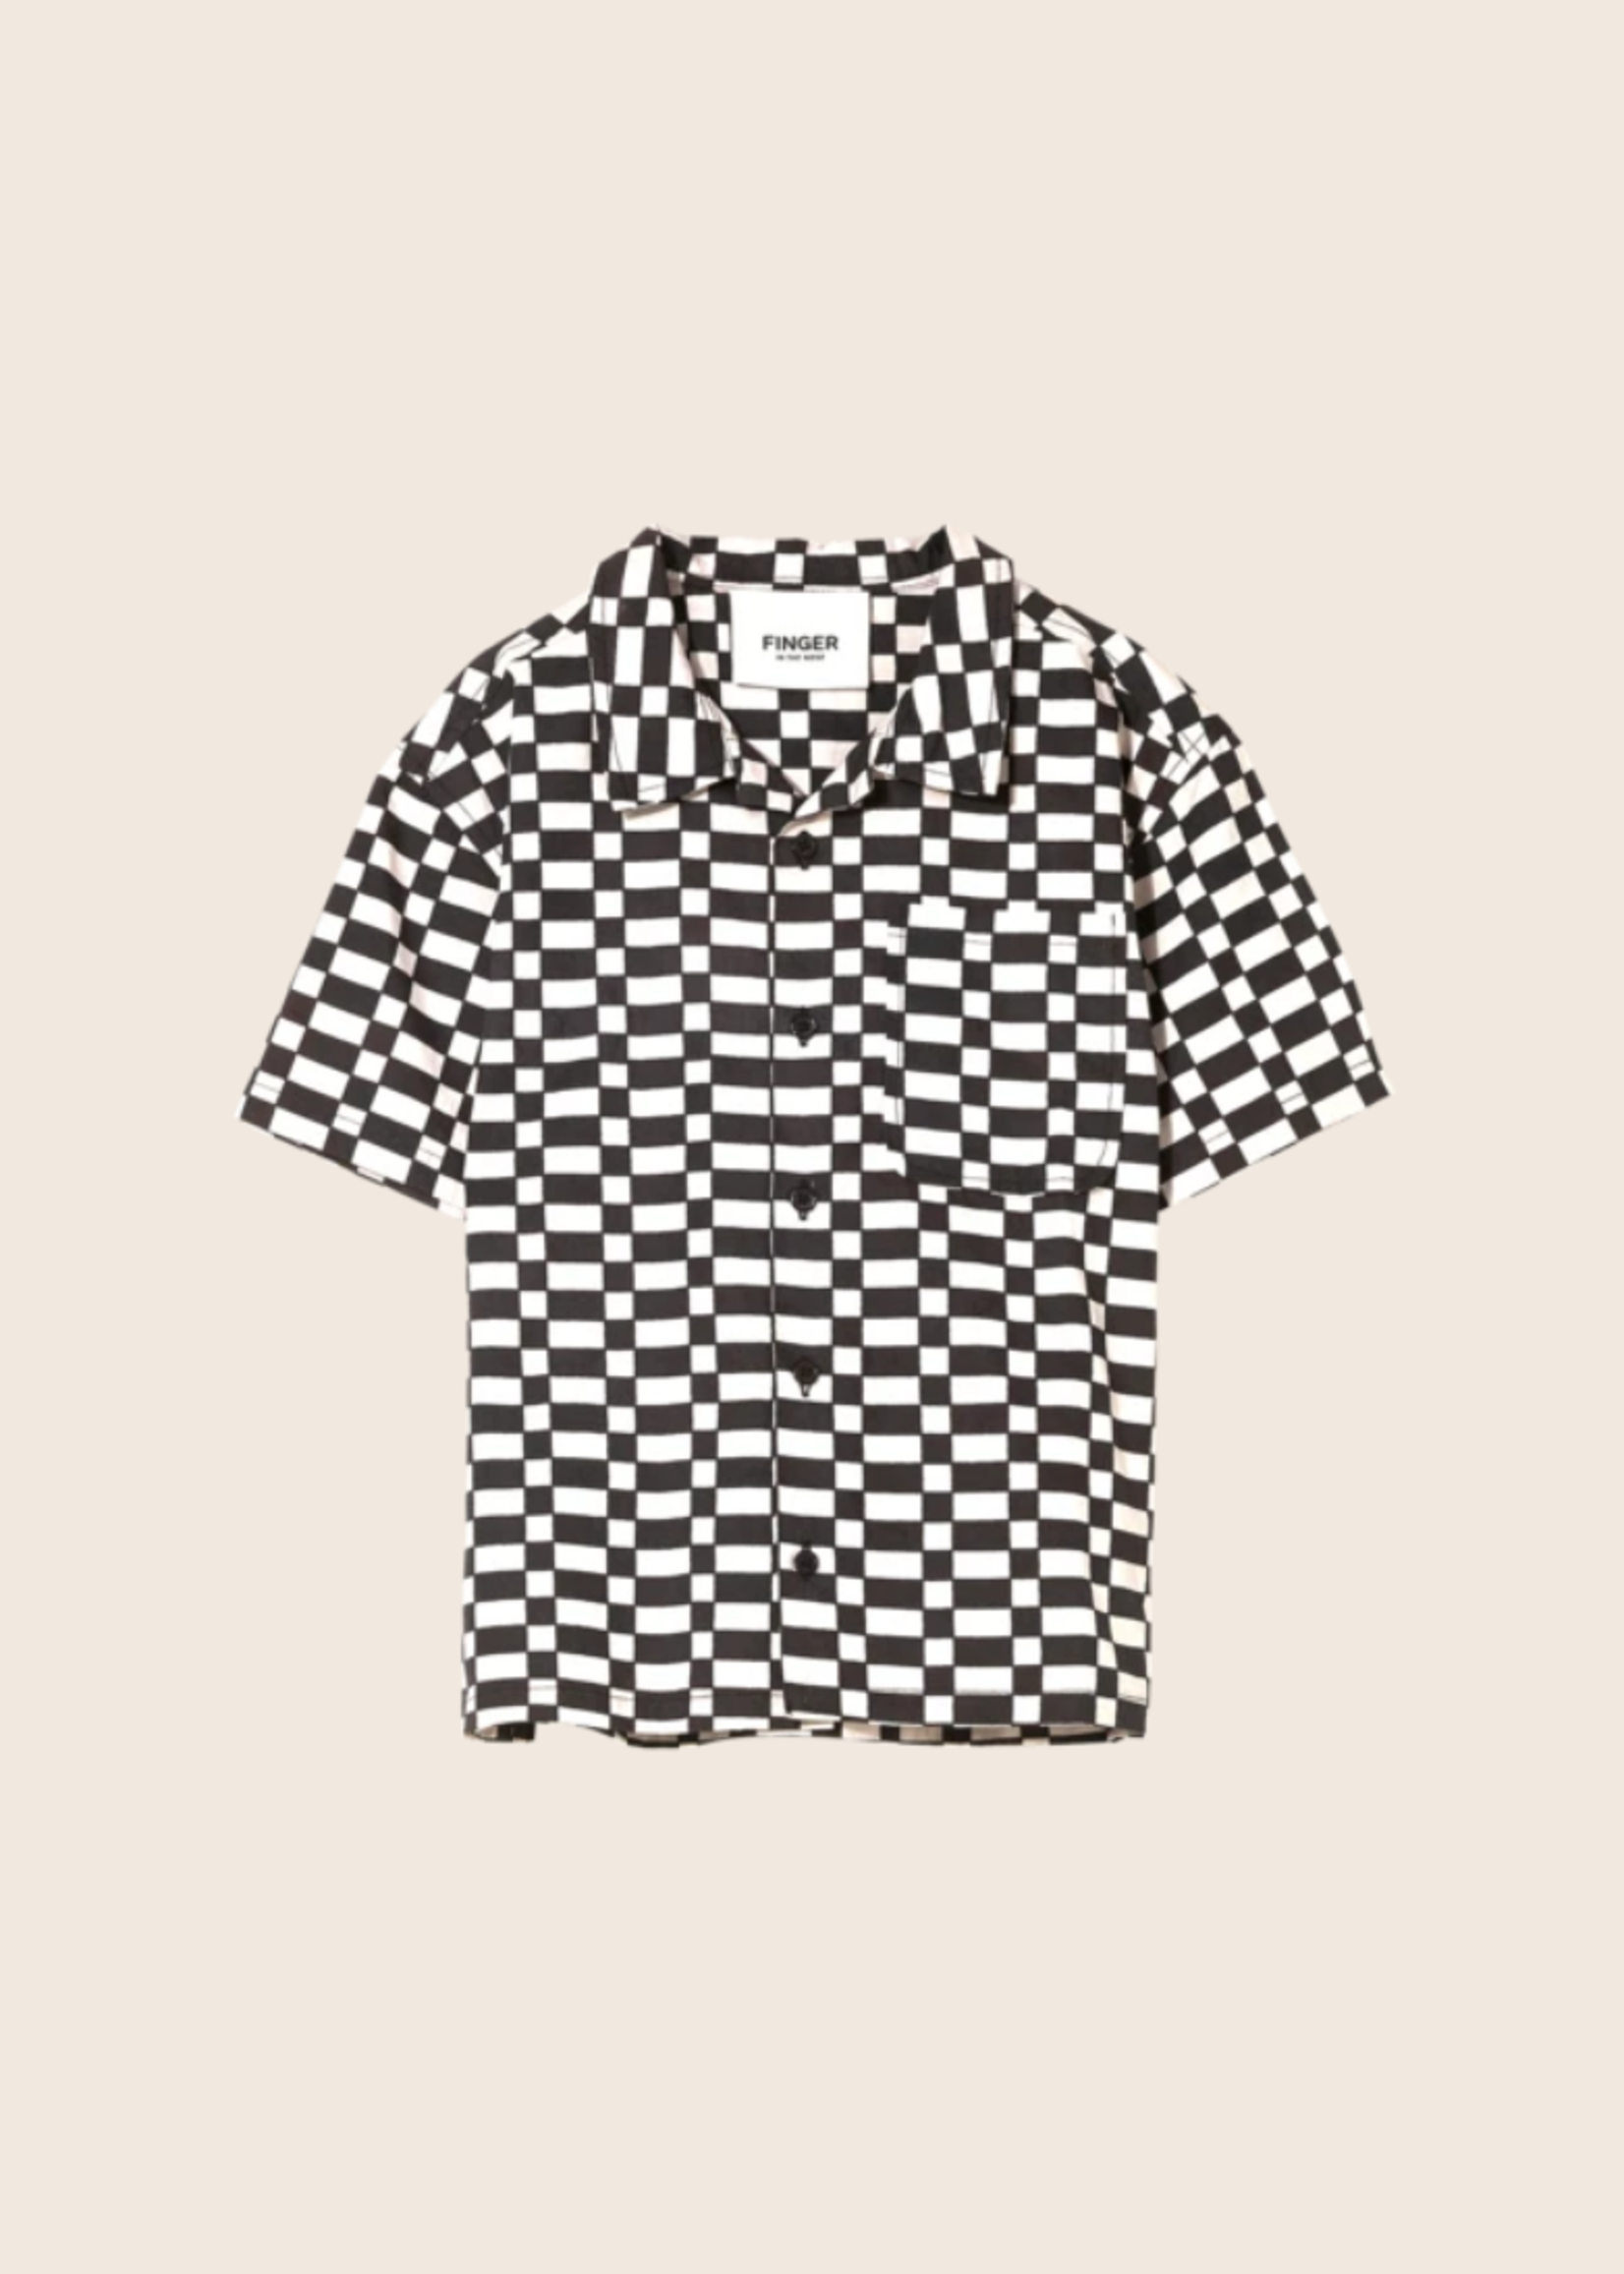 FINGER IN THE NOSE CHUCK Ash Black/Off White Checkers - Short Sleeve Shirt